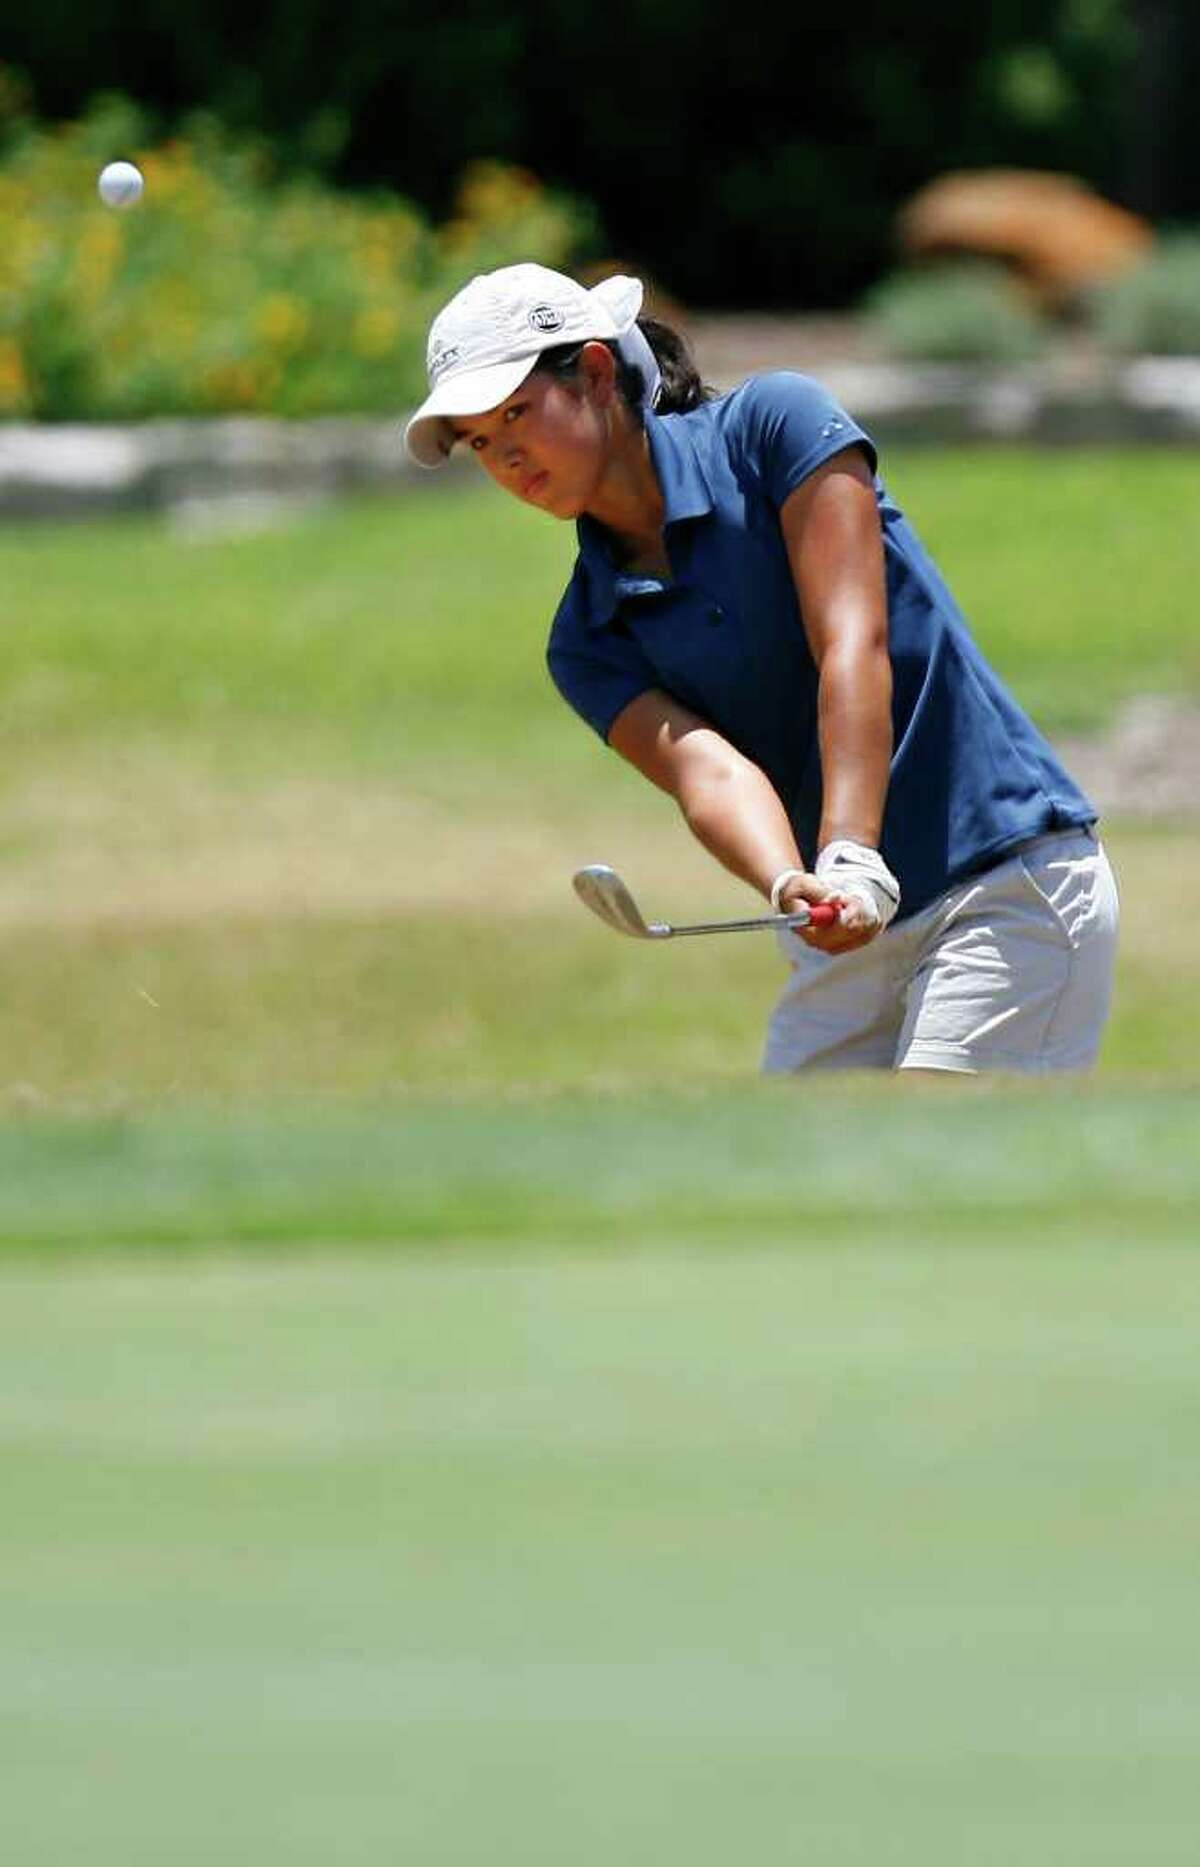 Kayli Quinton competes in the final round of the Genesis Shootout Thursday, July 24, 2011 at the Fair Oaks Ranch Country Club. Quinton of Houston won the girls division and Southlake's Matt Gilchrist took the boys division. SALLY FINNERAN/sfinneran@express-news.net